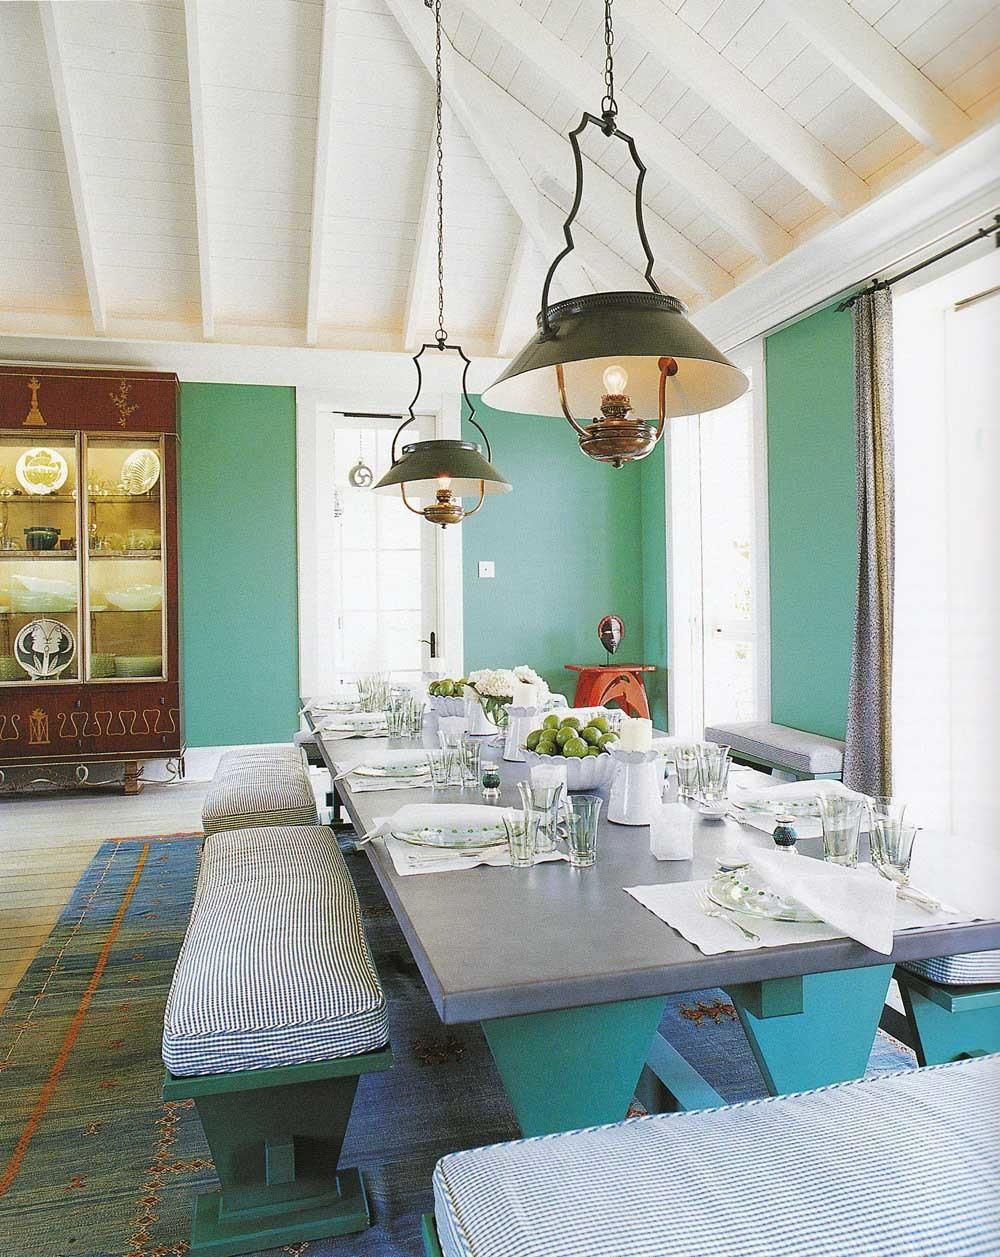 Comfortable Dining Room Eclectic Interior Design